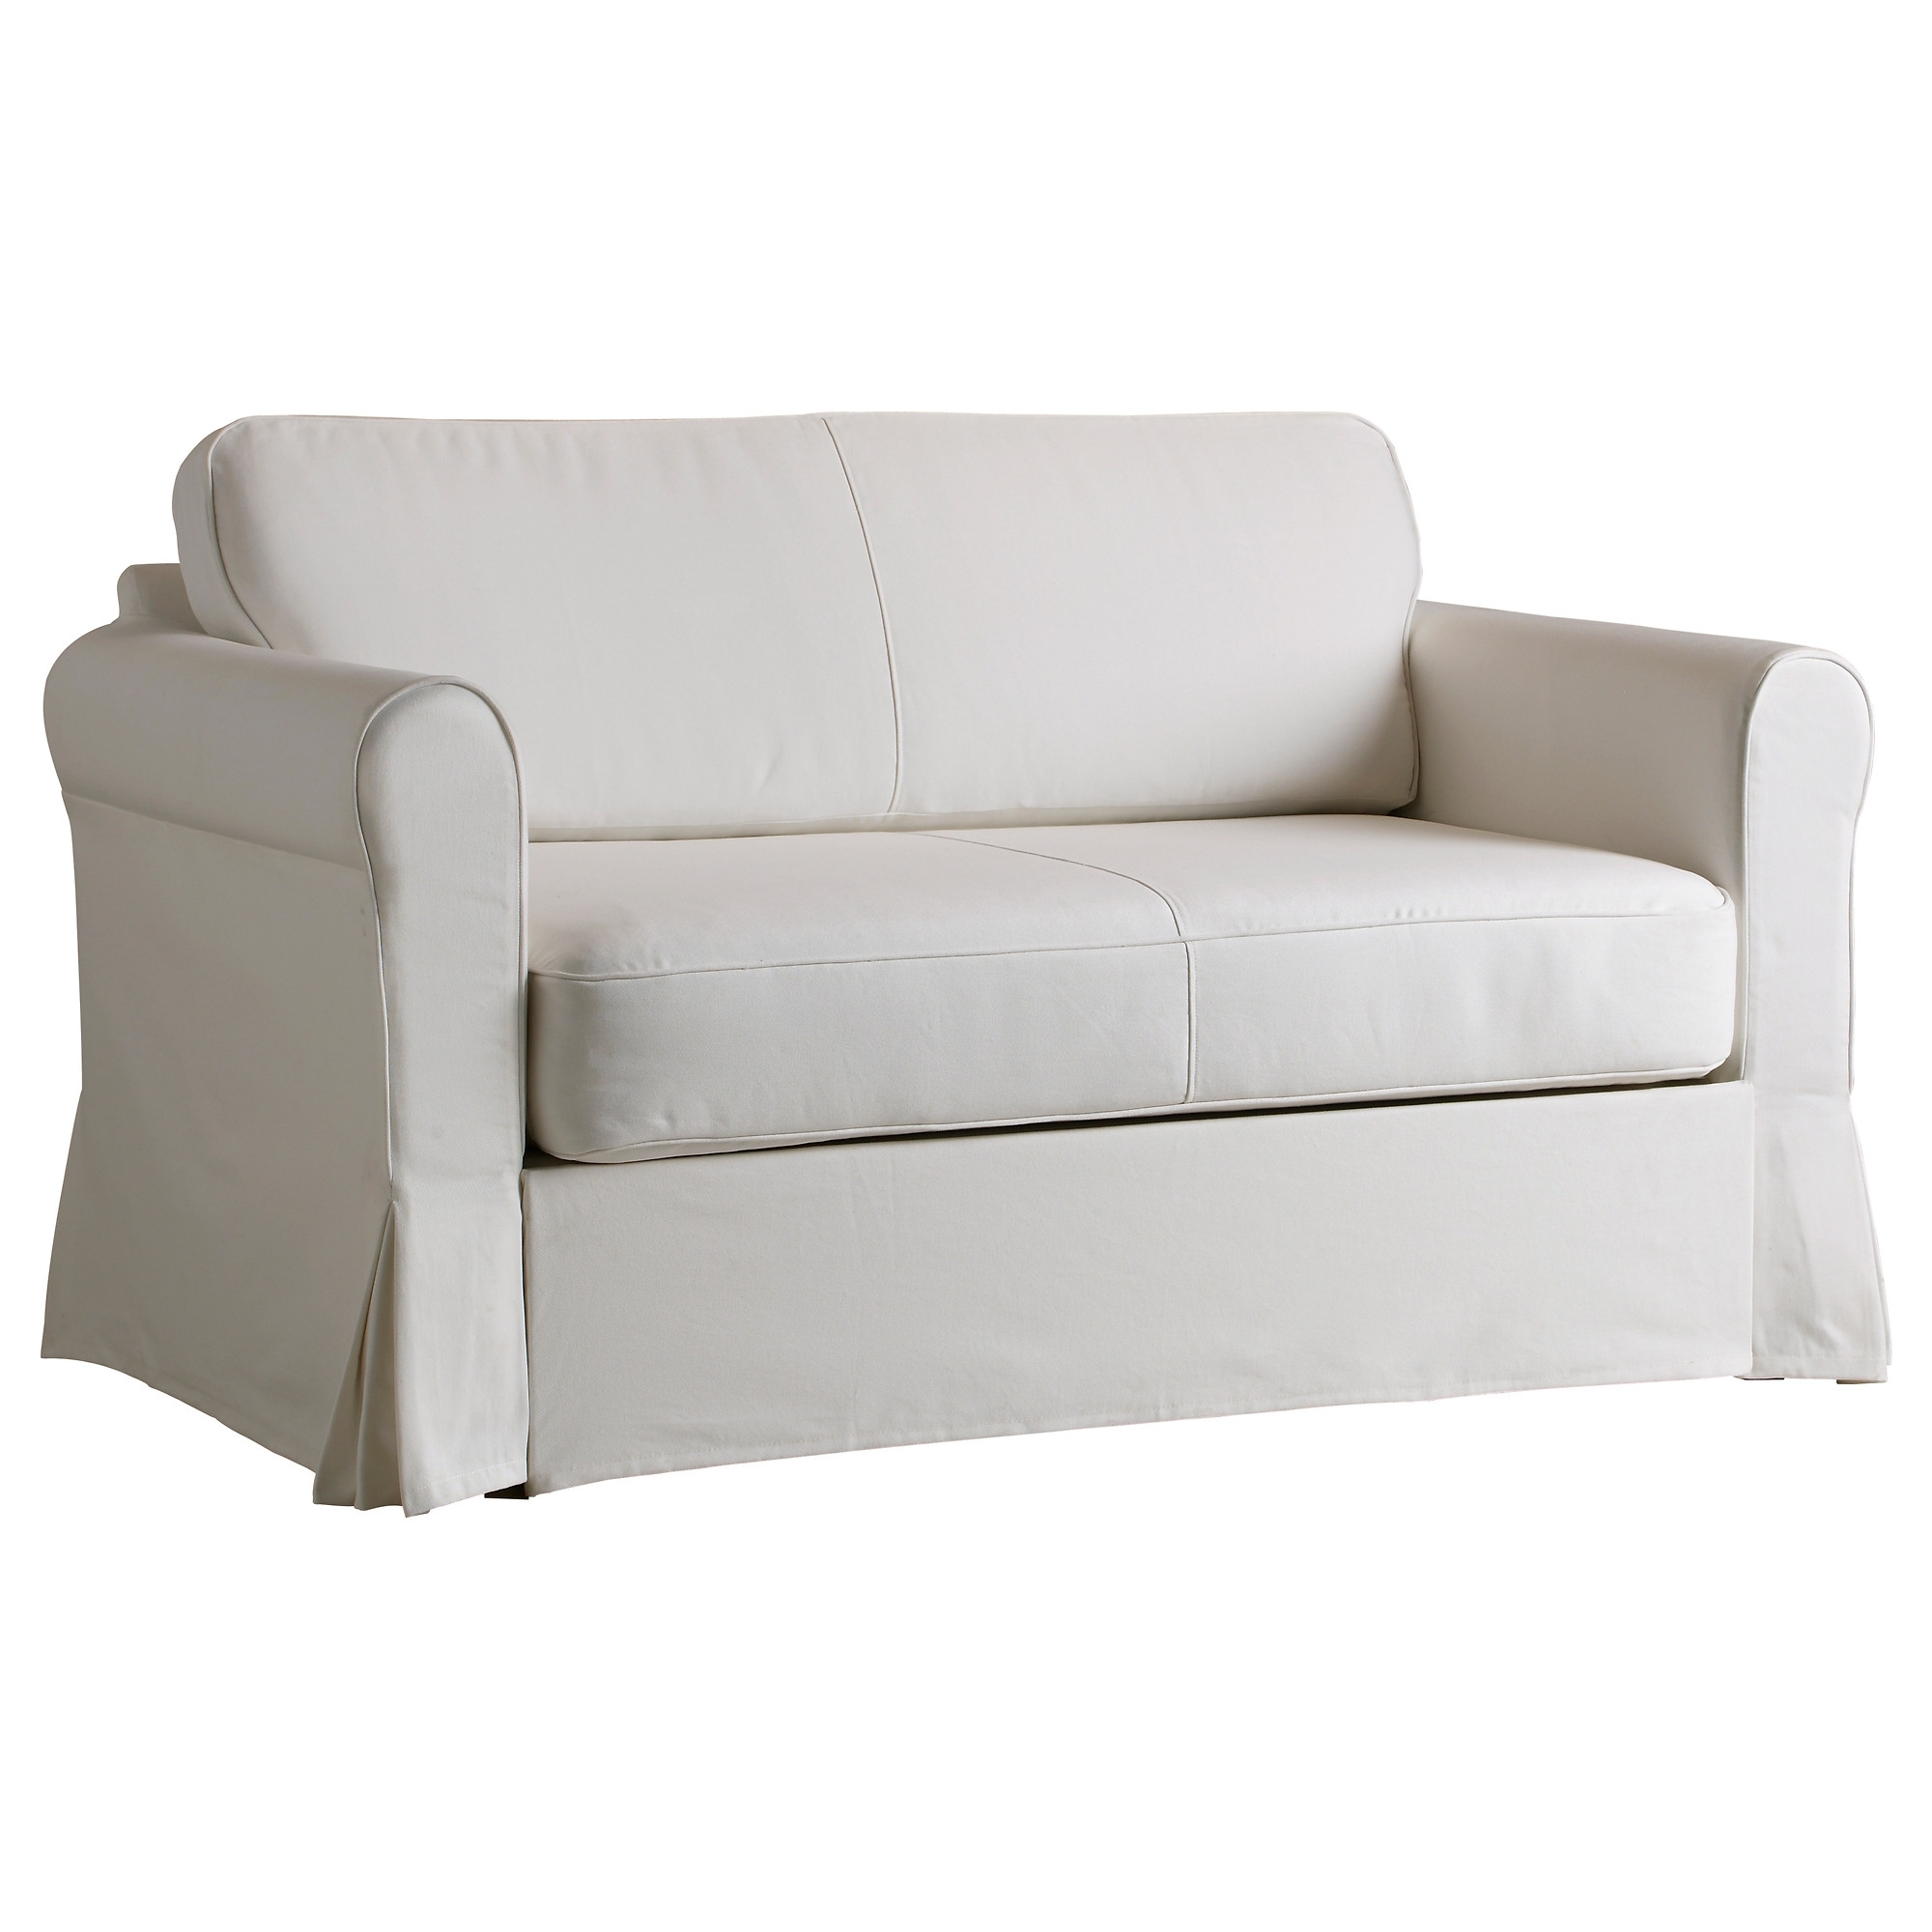 Best And Newest Furniture Ikea Ps Lc3b6vc3a5s Sleeper Sofa Grc3a4sbo White Then Intended For